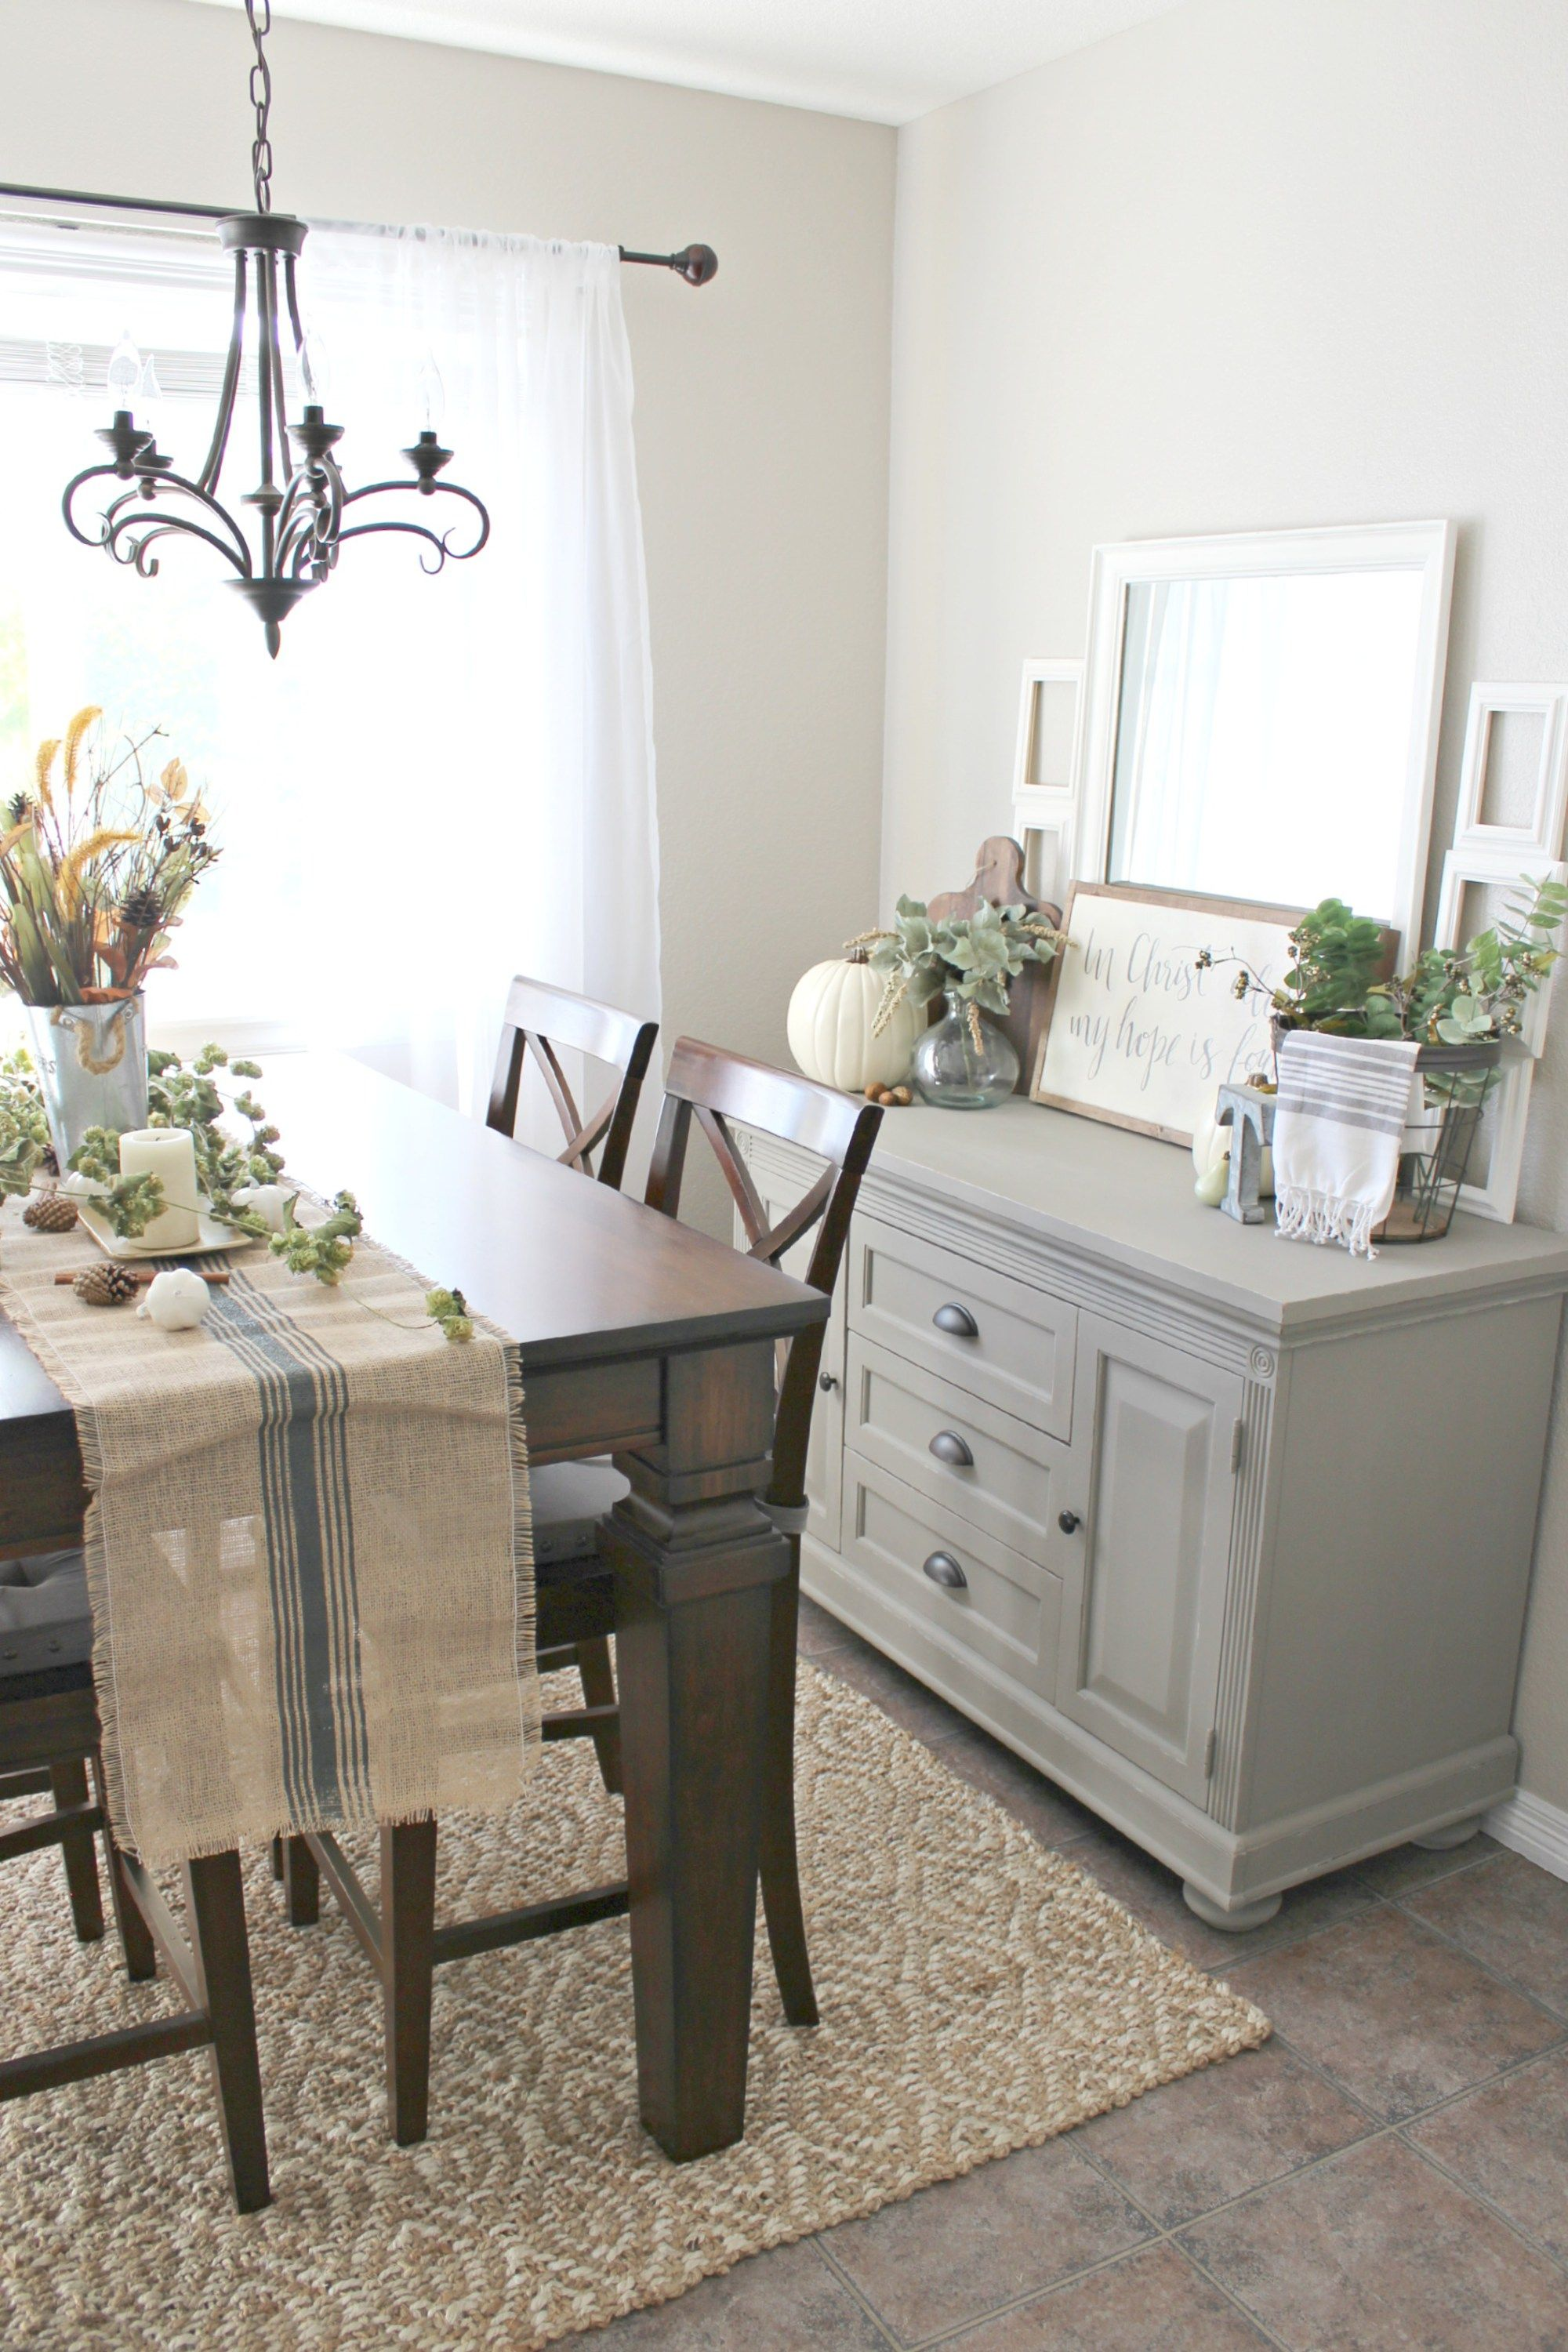 Dining Room Buffet Painted With Chalk PaintR Decorative Paint In French Linen